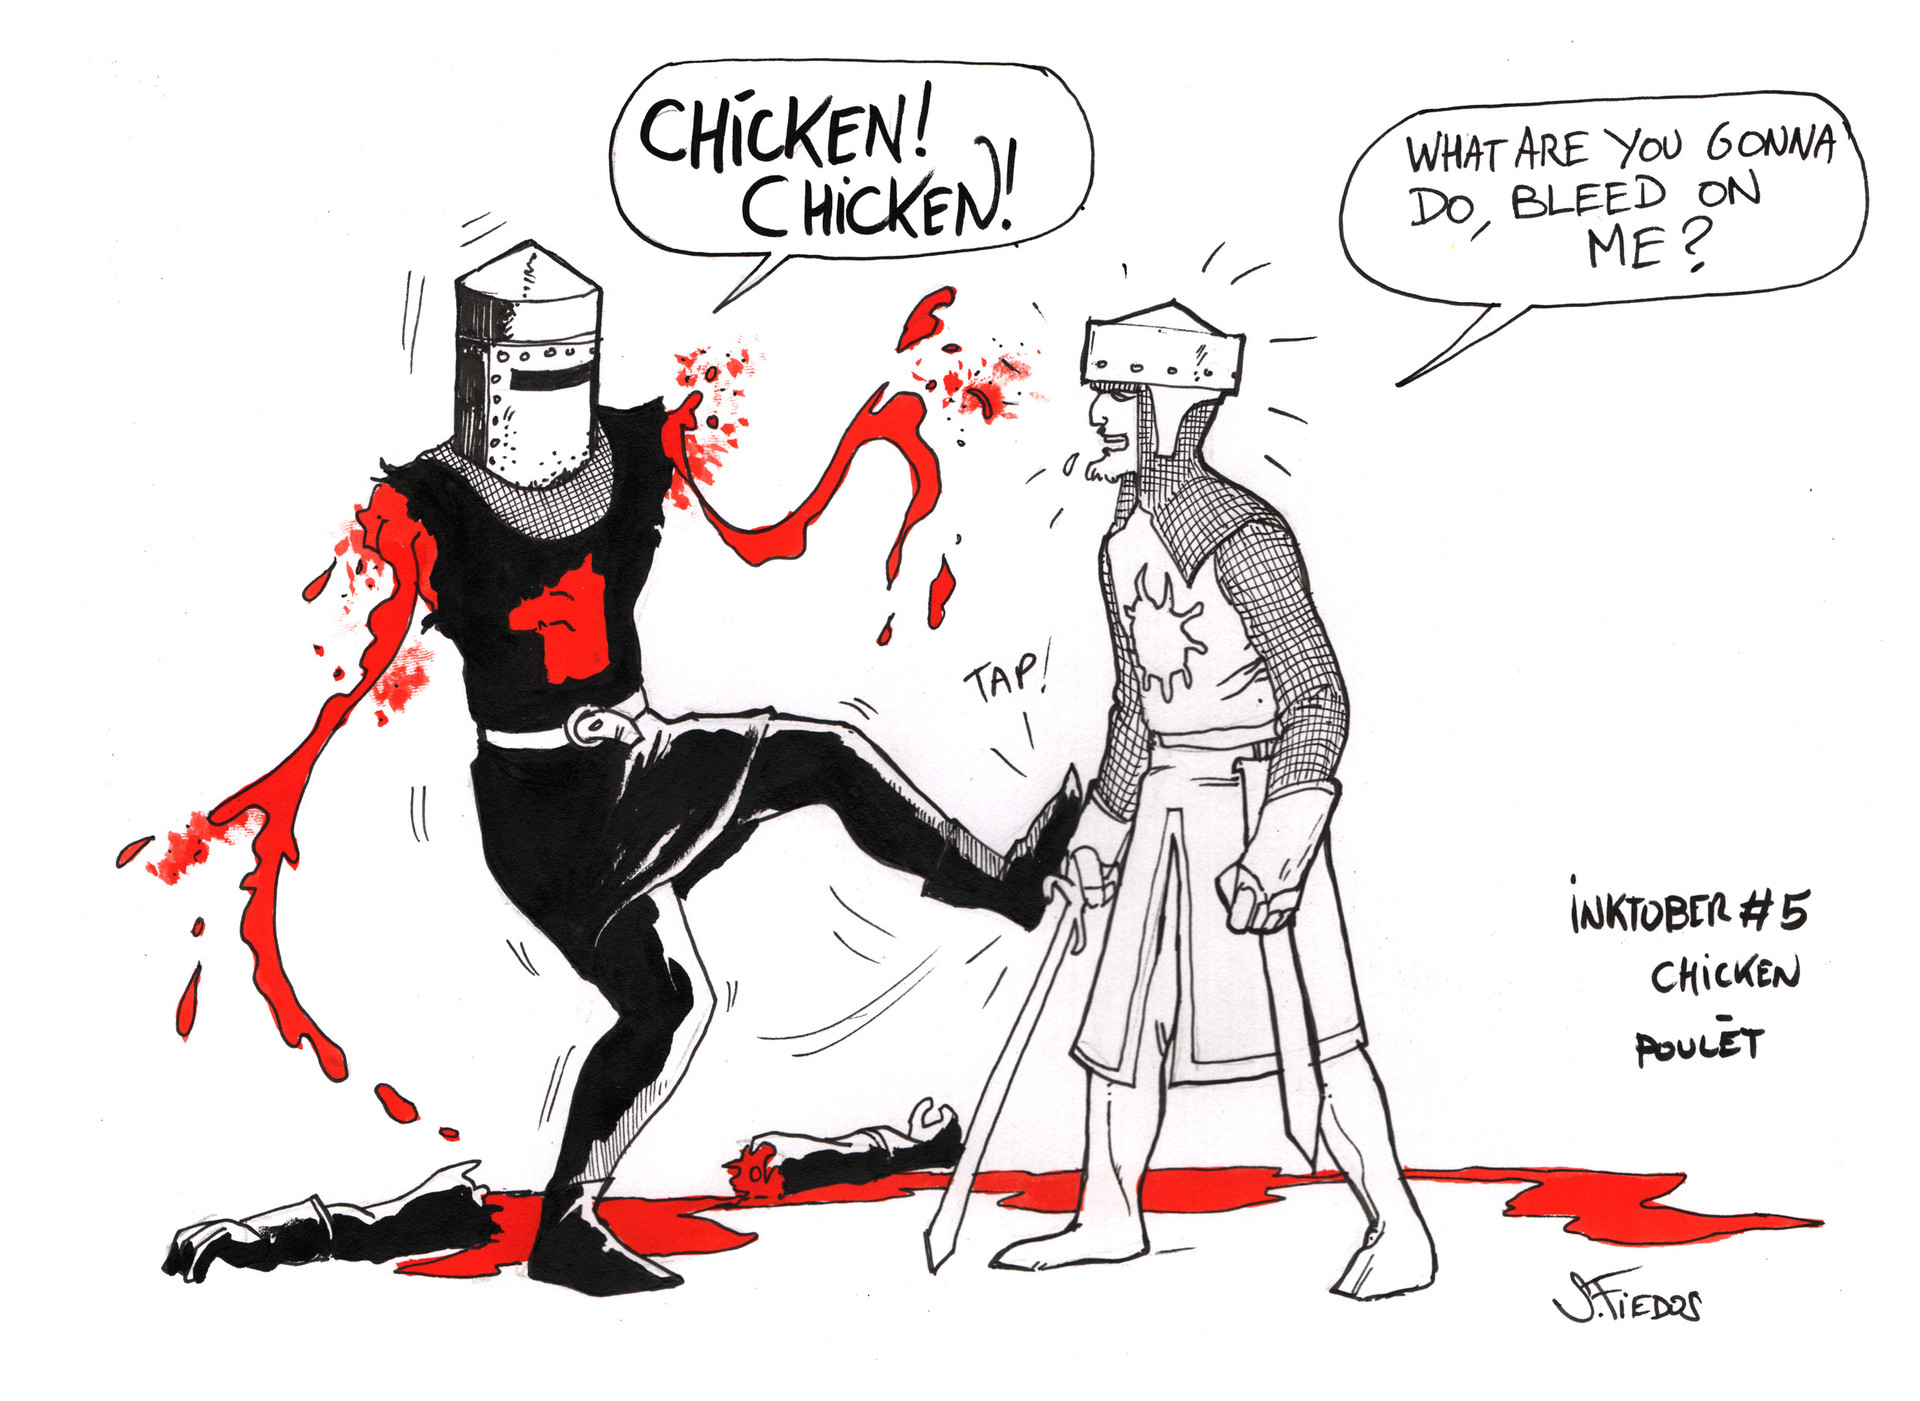 Serge fiedos inktober05 chicken by sergefiedos